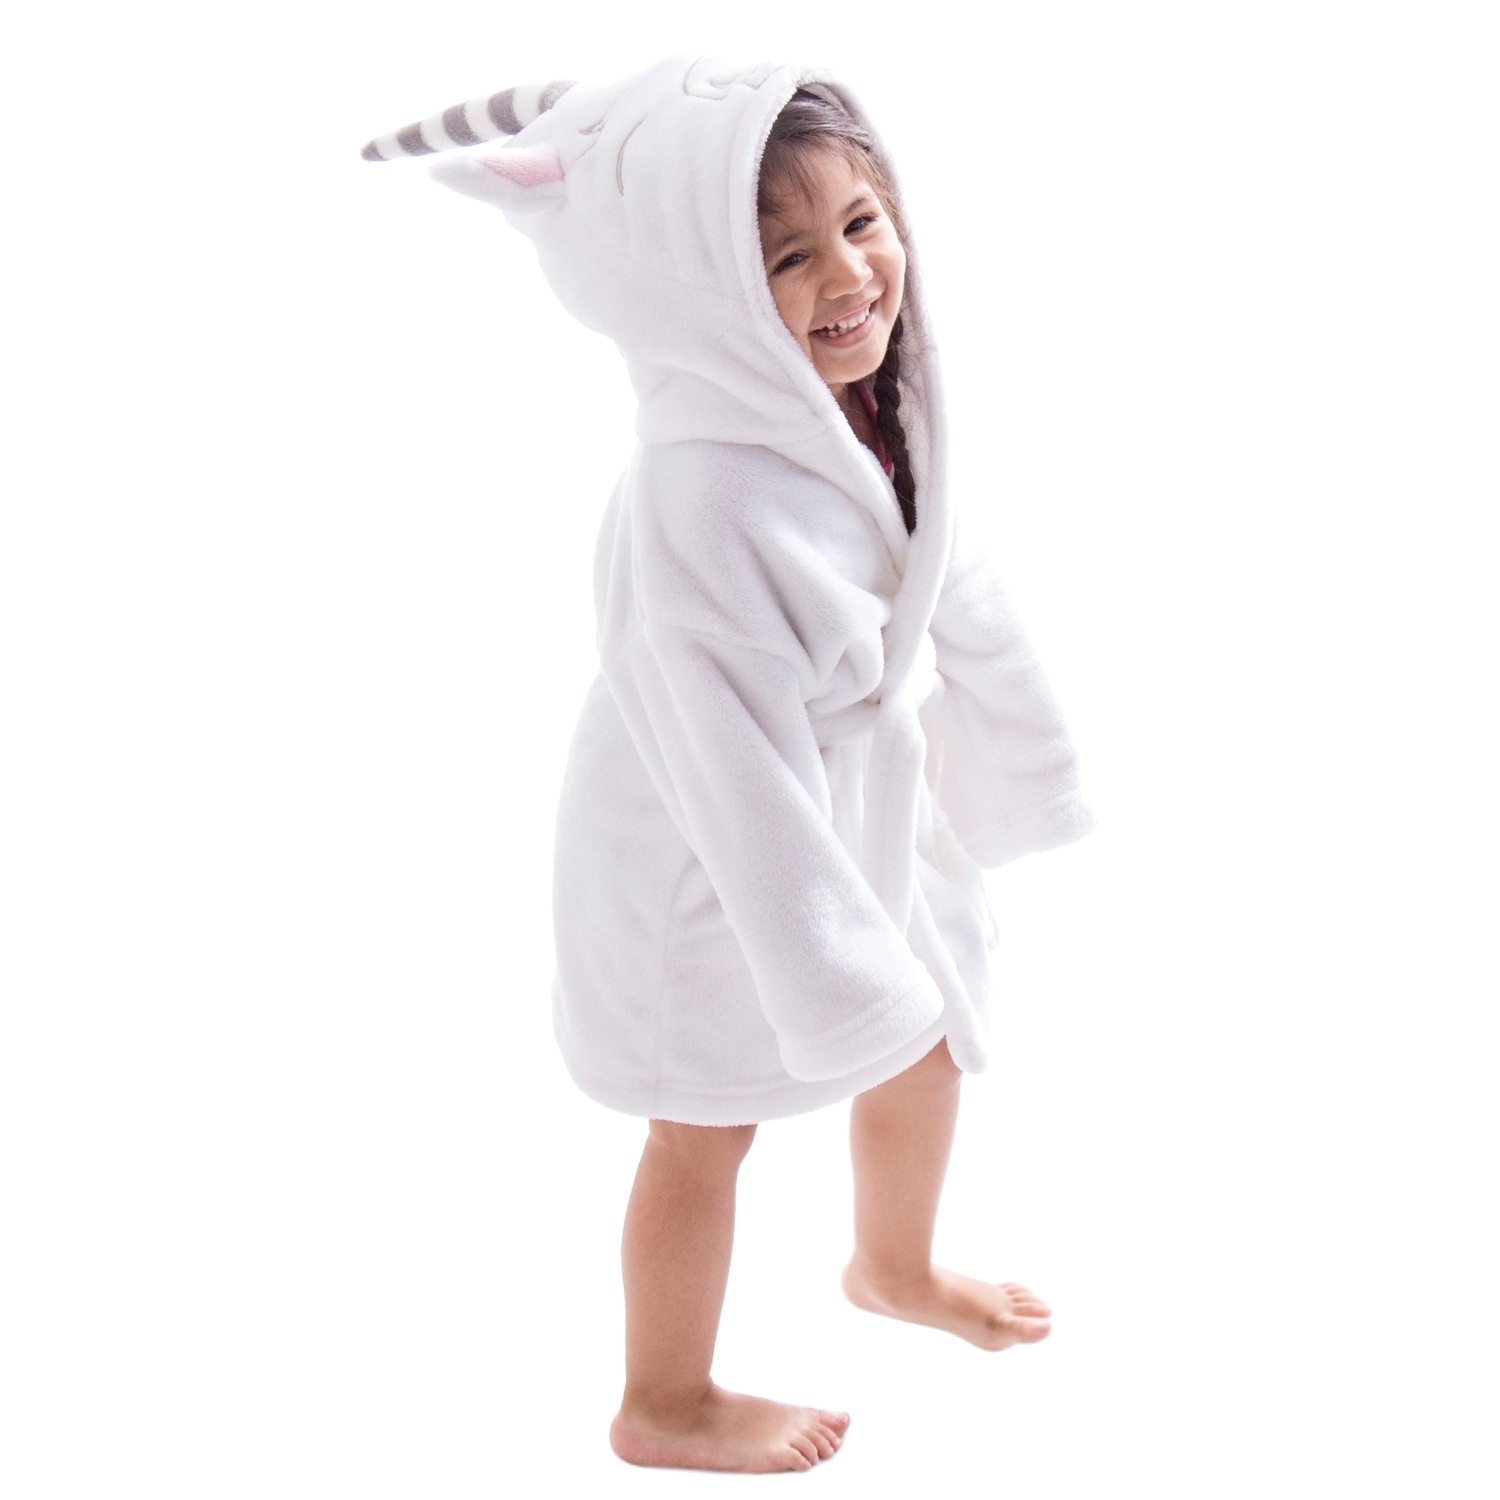 61c994839a Shop Arctic Paw Animal Adventures Plush Soft Hooded Terry Bathrobe - On  Sale - Free Shipping On Orders Over  45 - Overstock - 18128825